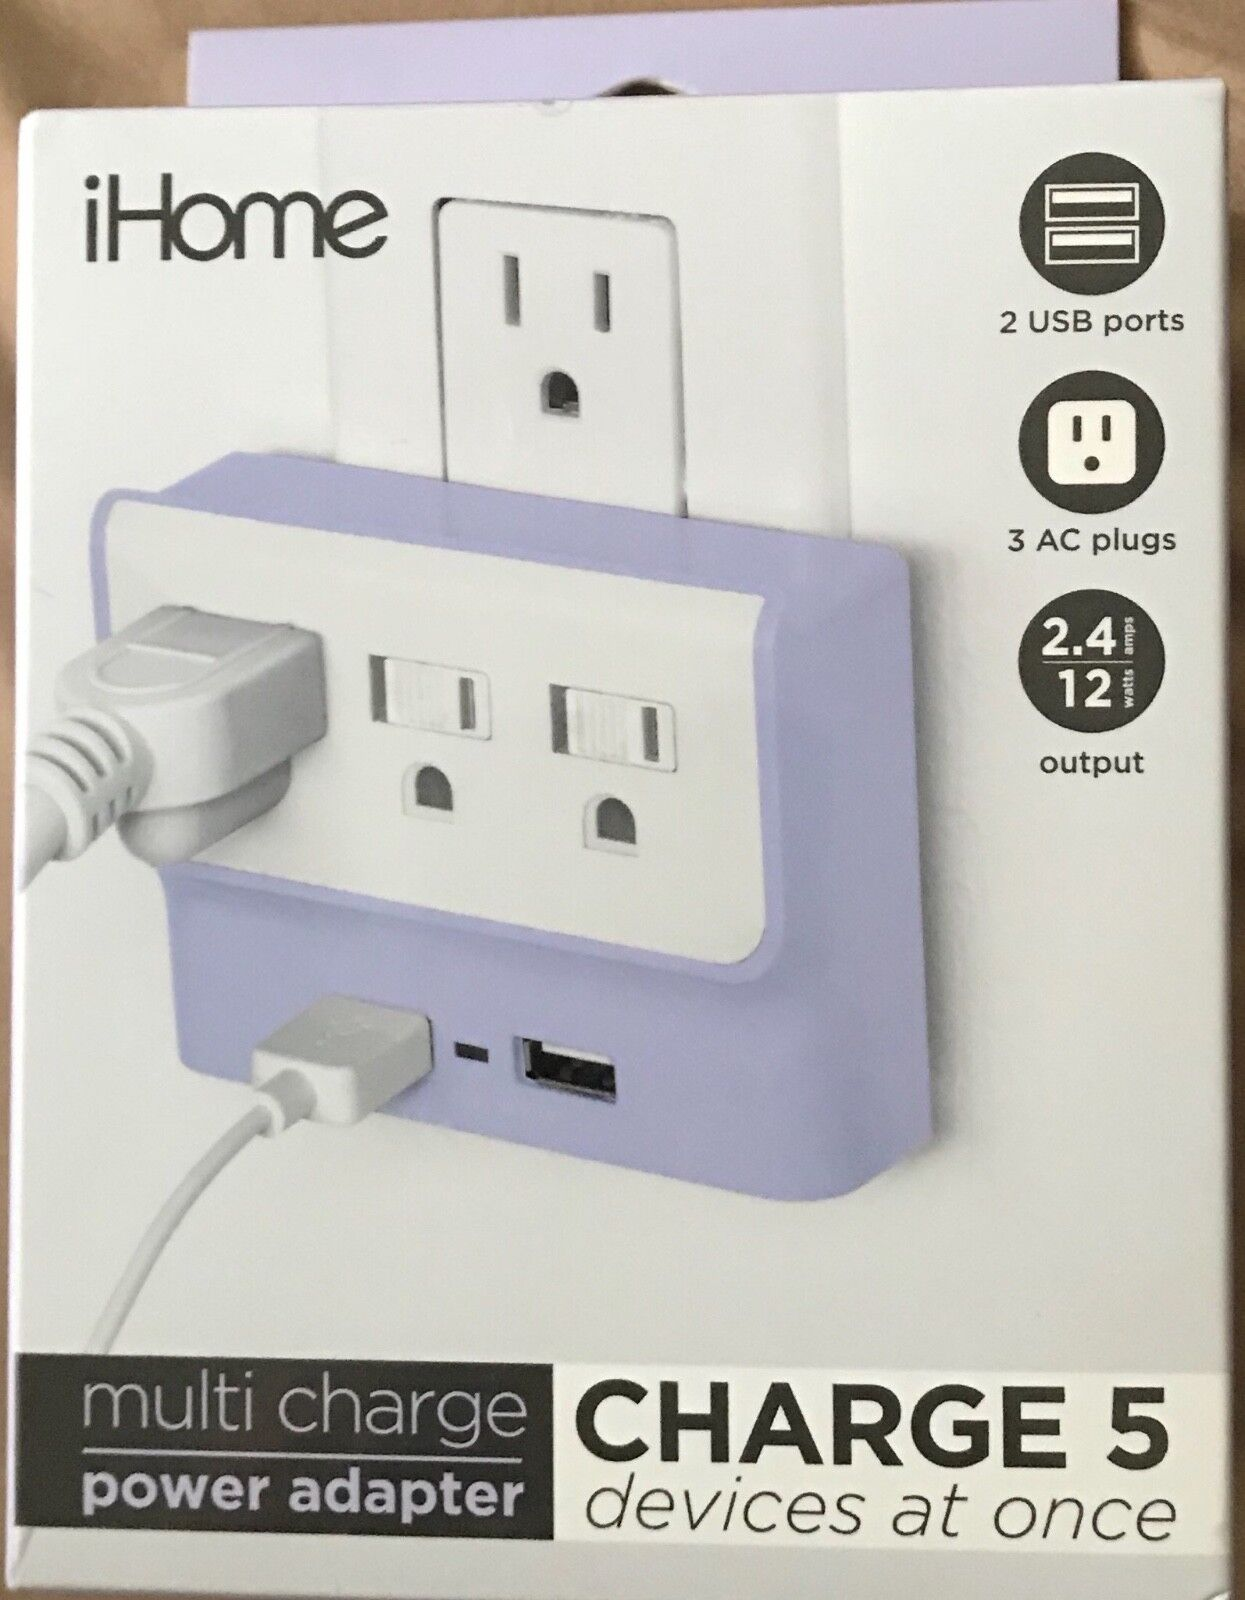 iHome Compact Multi Charge Power Adapter 2 USB + 3 AC Ports